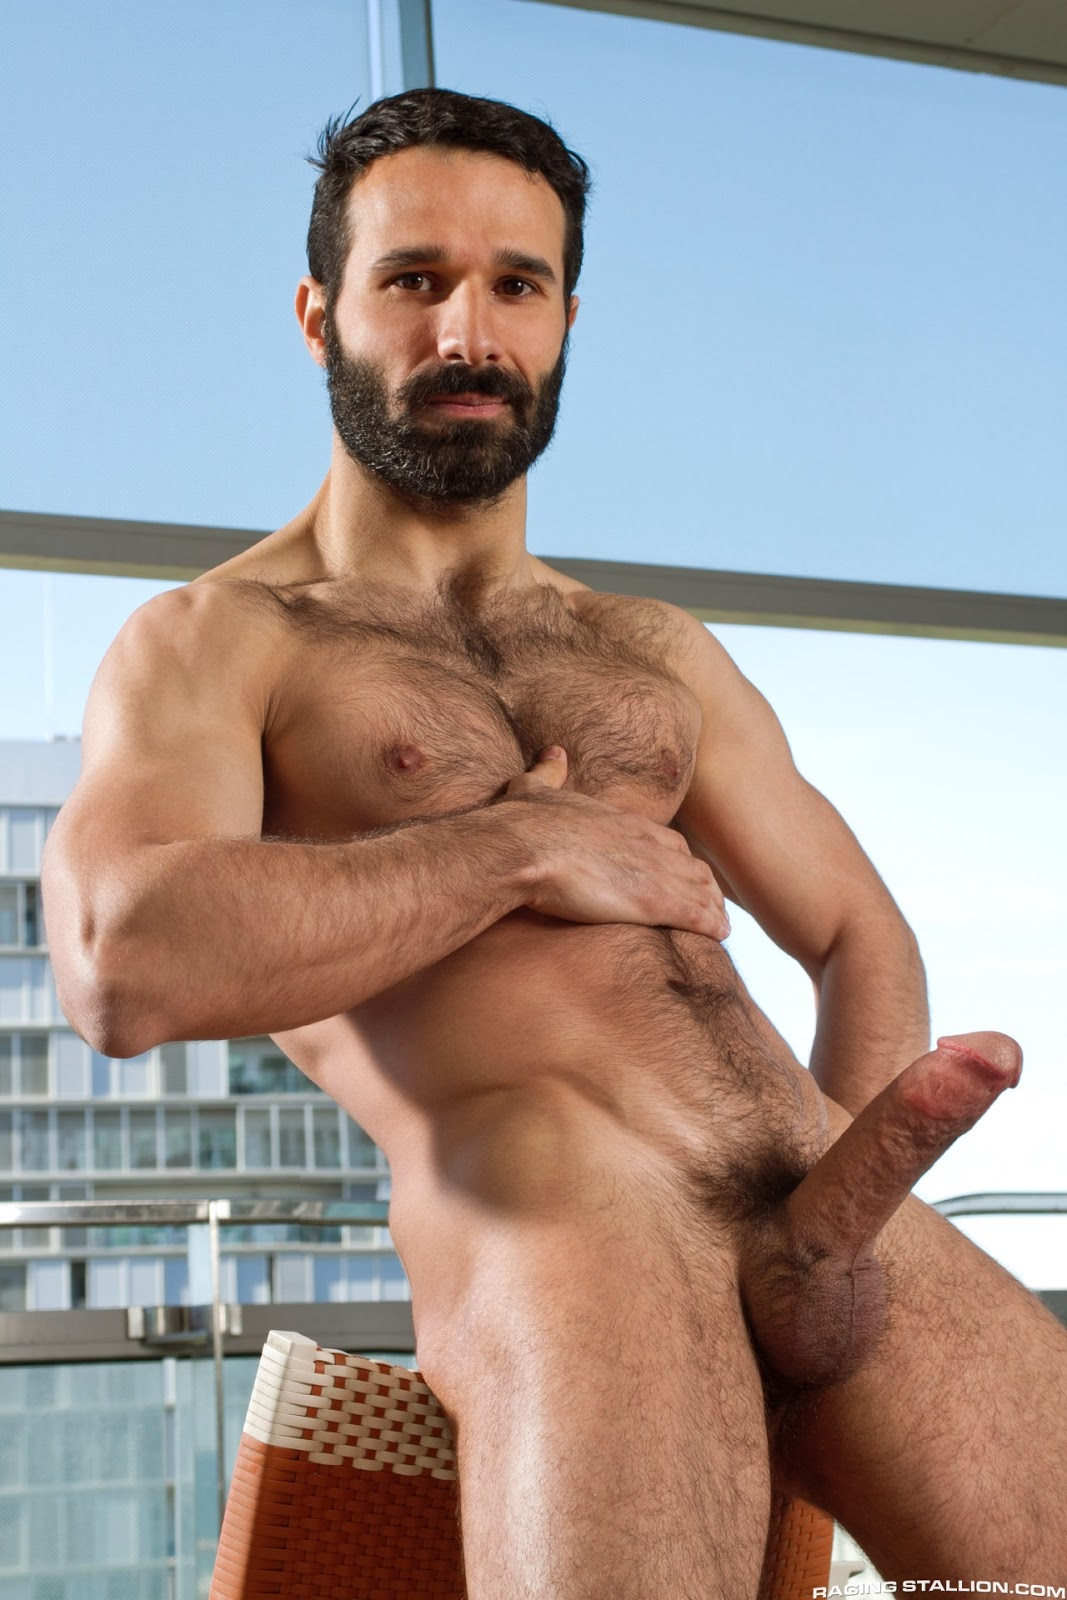 Check out popular Tommy Defendi gay pornstar videos and XXX clips exclusively at free gay tube